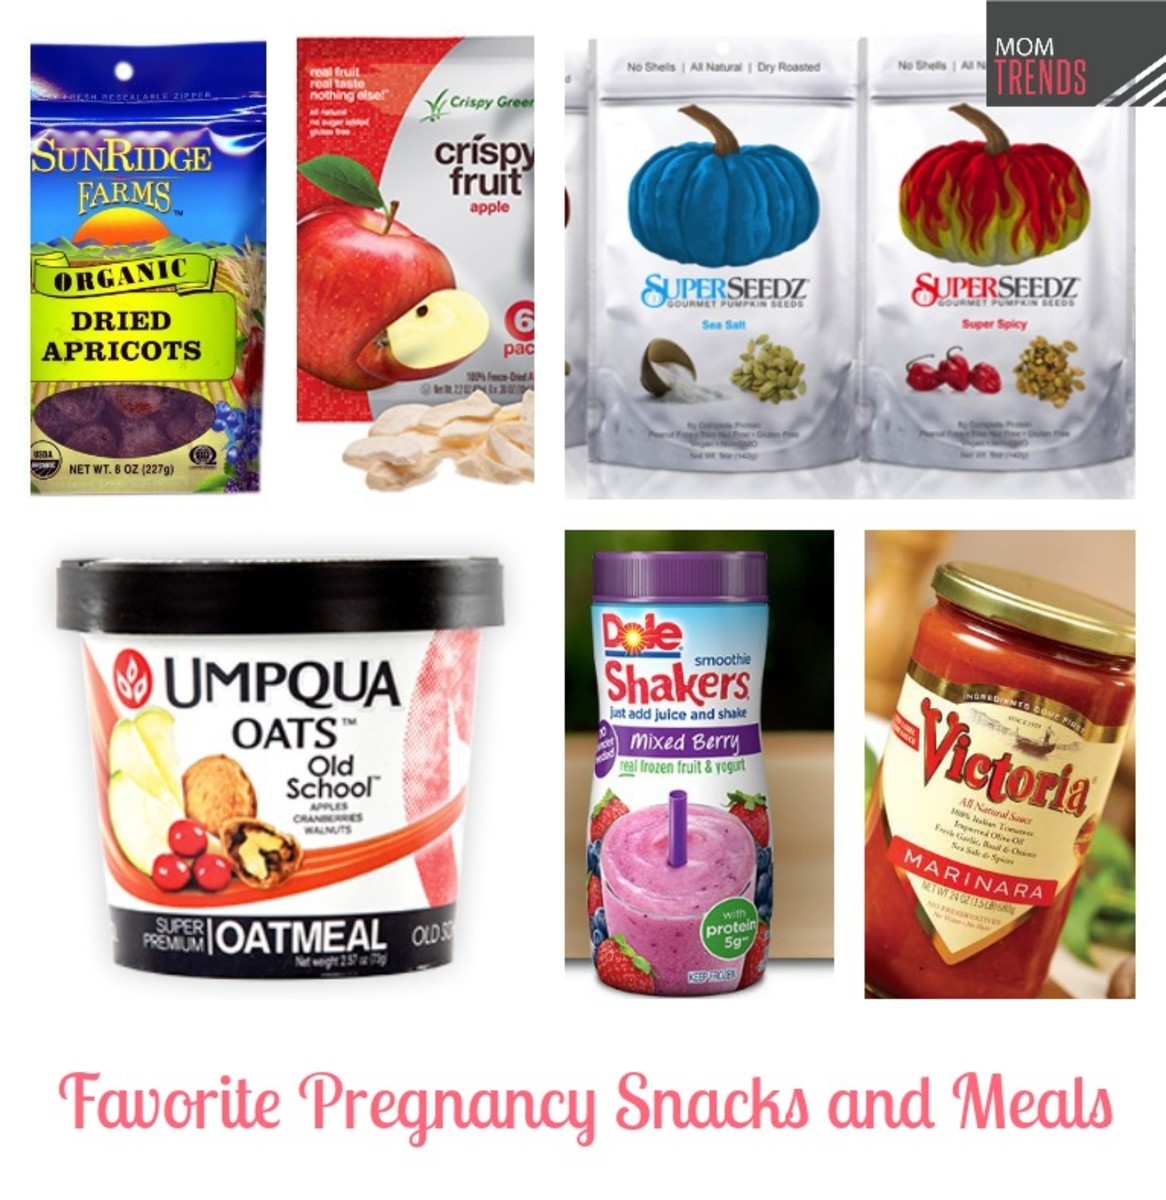 Pregnancy Snacks and Meals